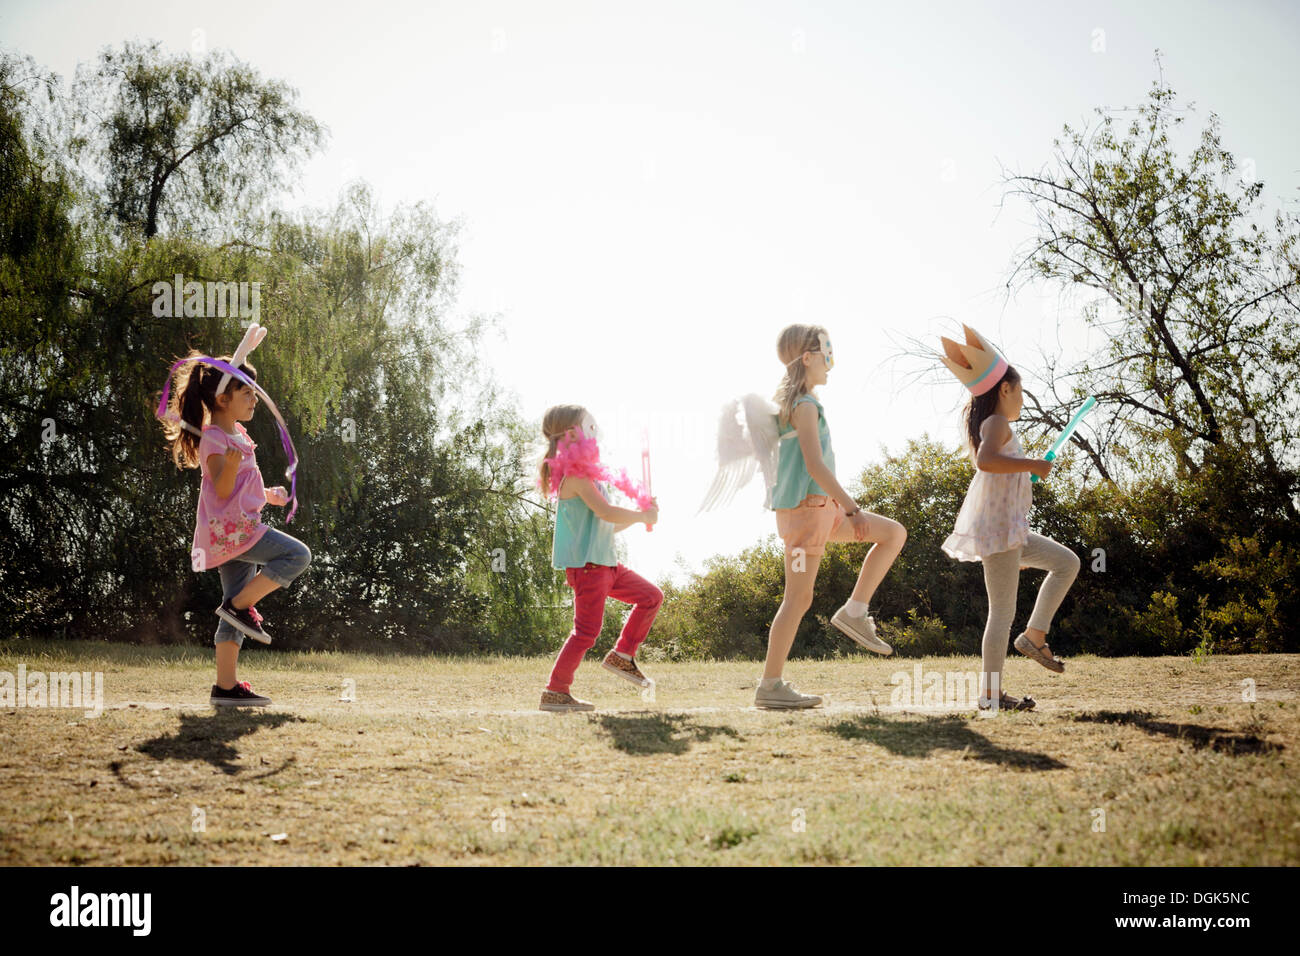 Children in costume marching - Stock Image